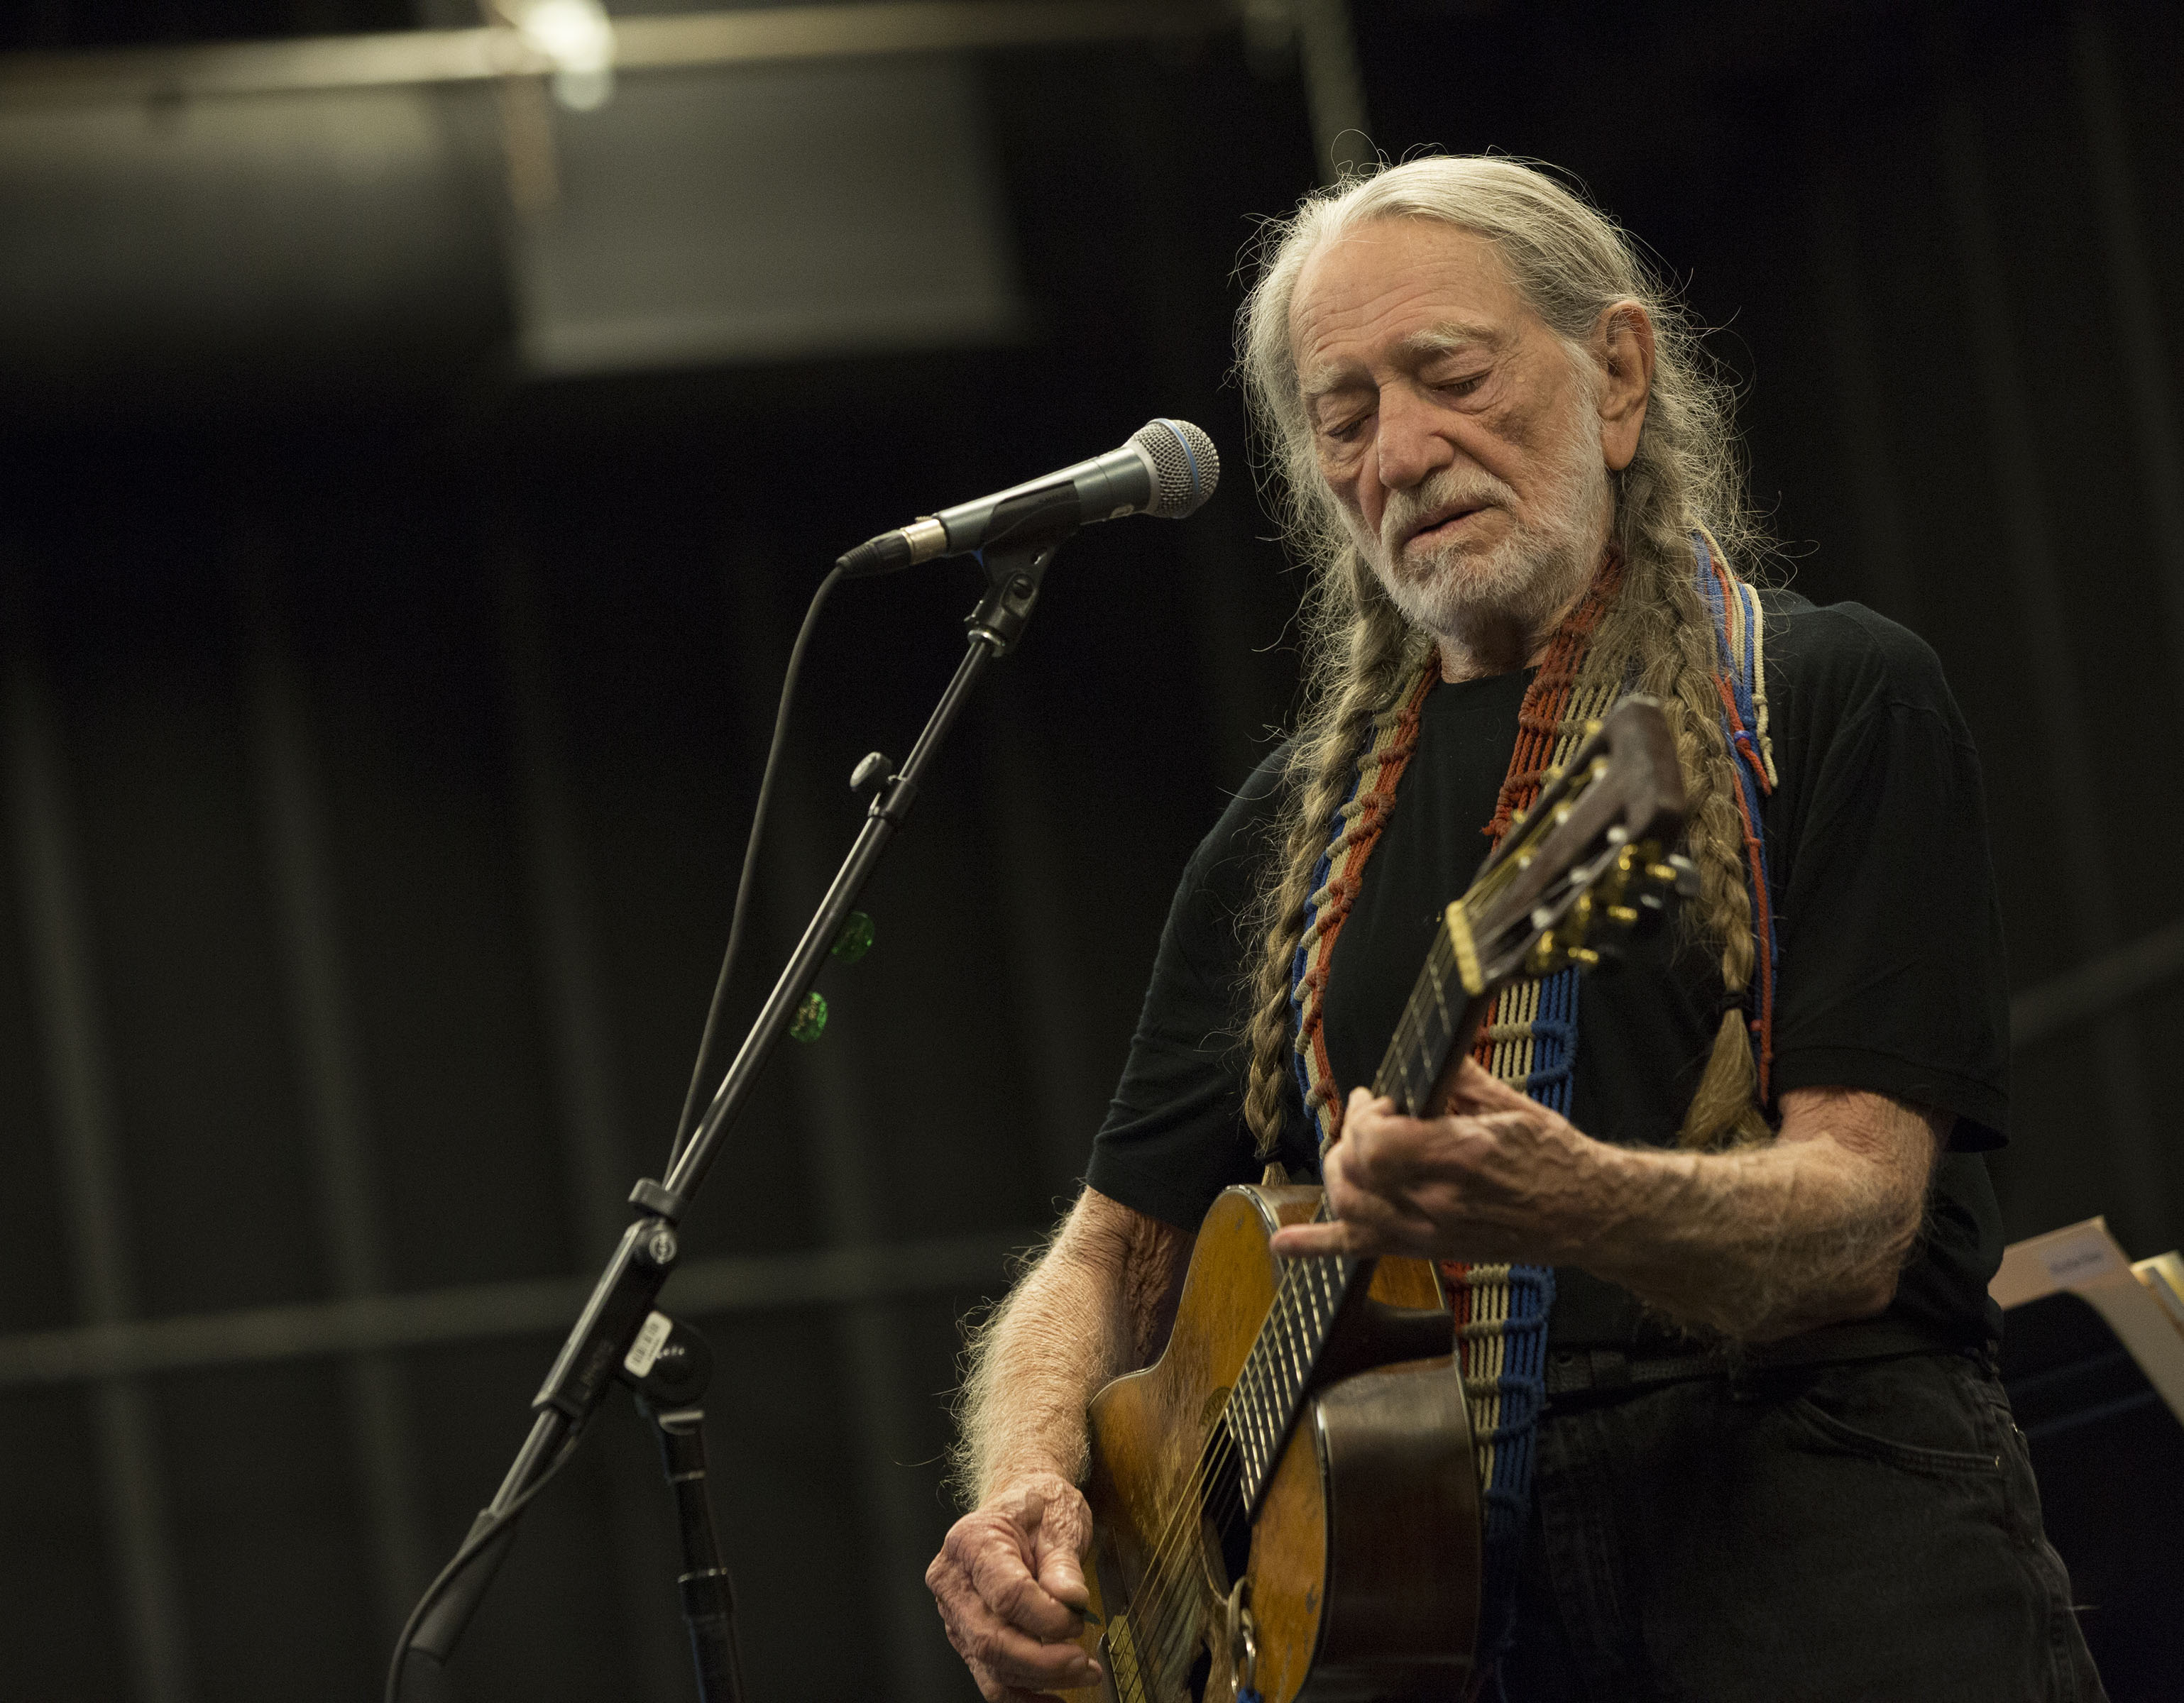 Willie Nelson Walks Off Charlotte Stage, Angers Concert Goers